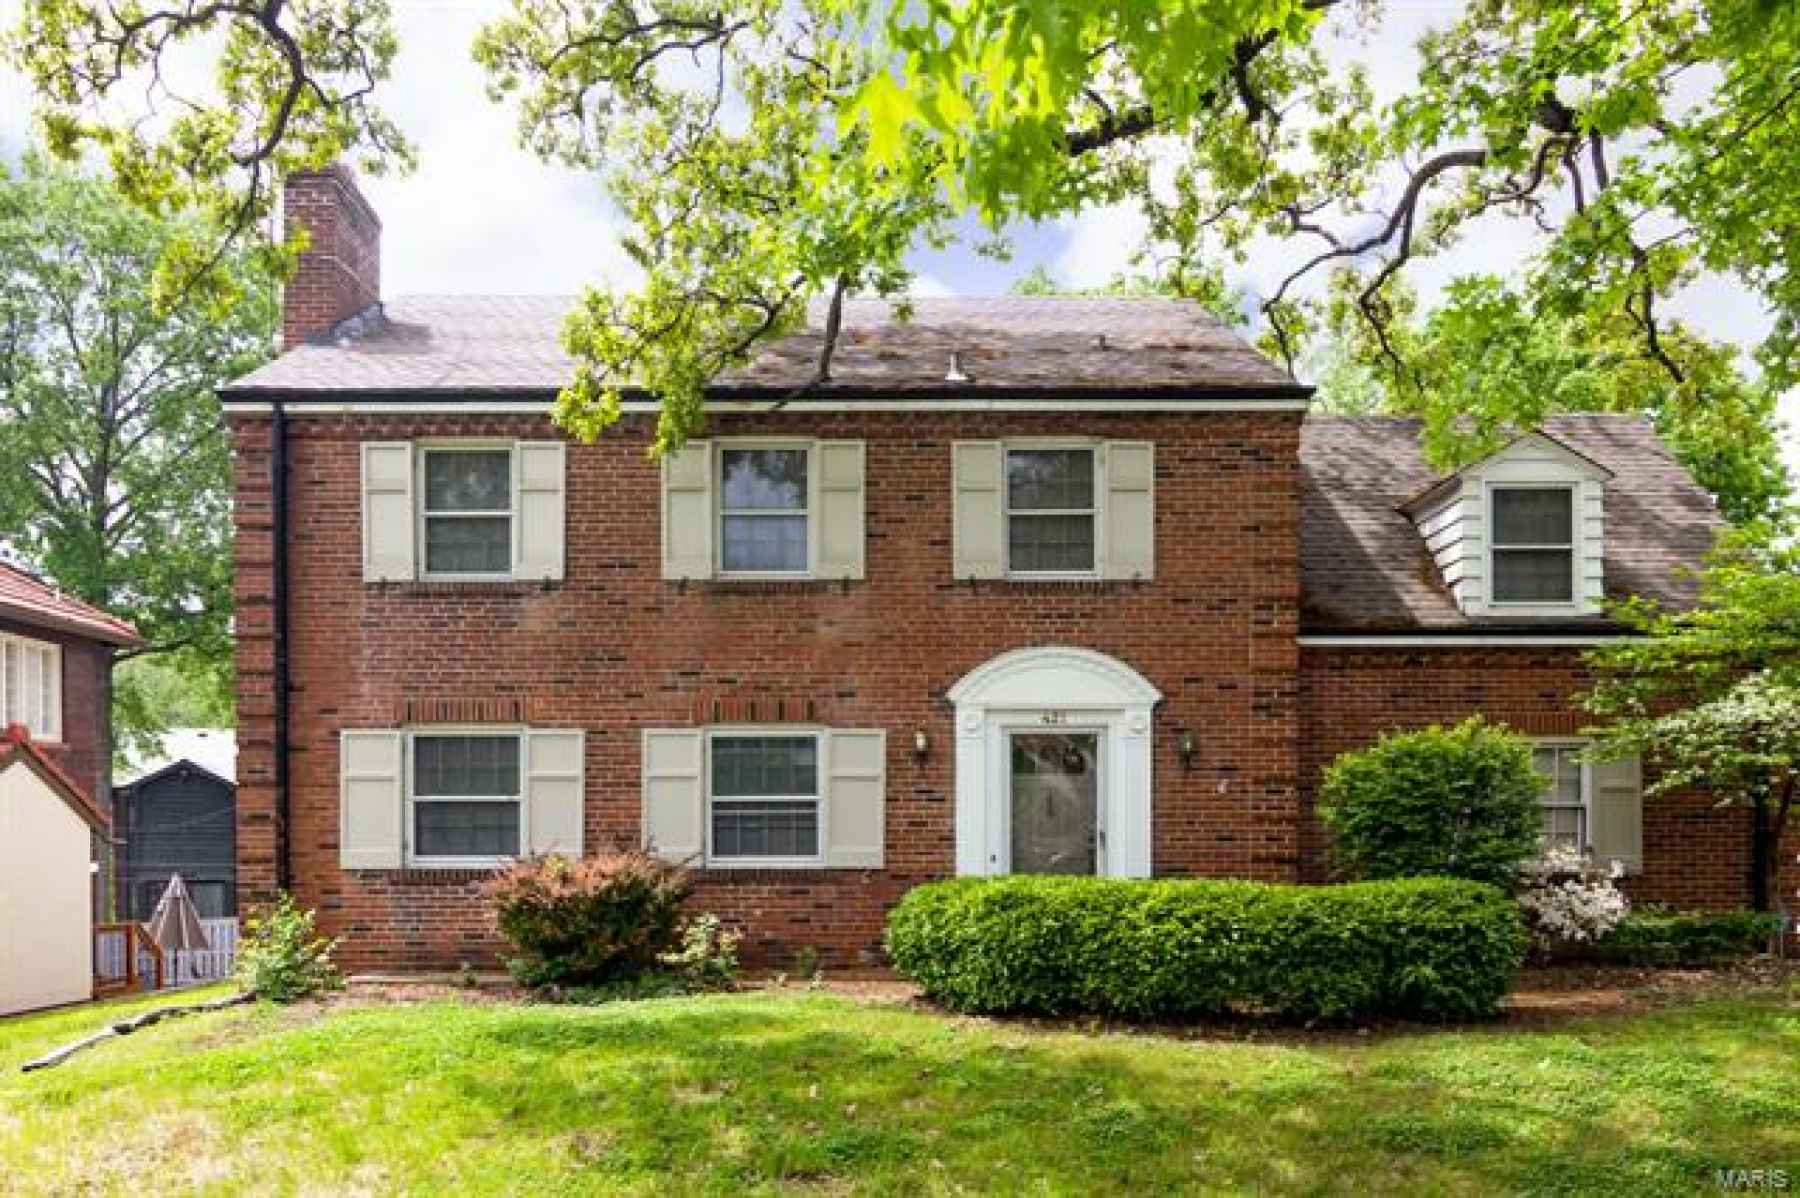 Welcome Home to 421 Edgewood Dr., Clayton, MO 63105 - Walking distance to Clayton schools and conveniently located near Forest Park and downtown Clayton.